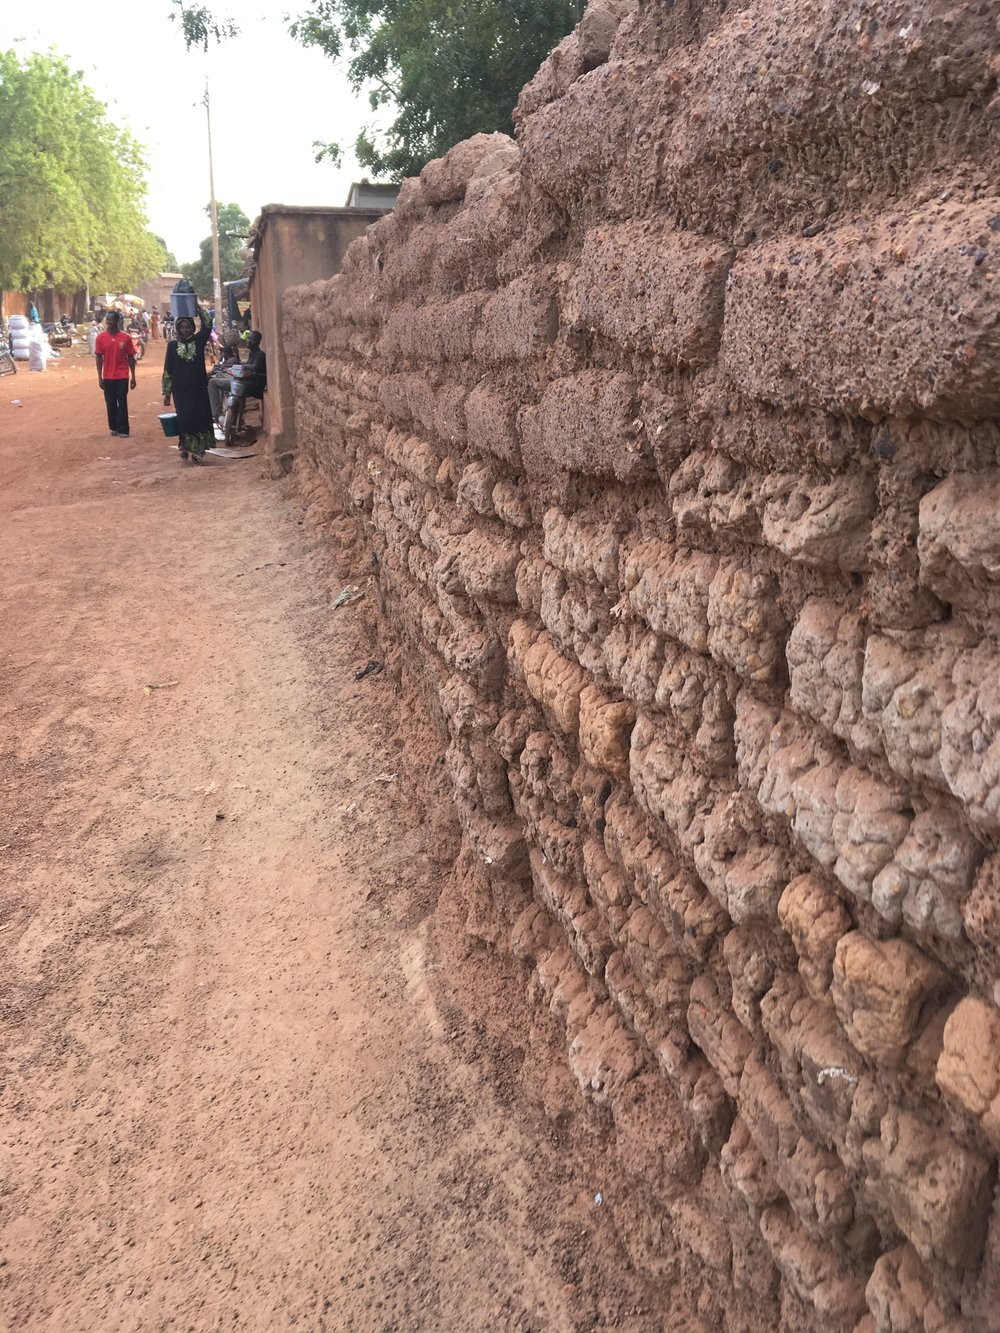 A typical wall along a town street.